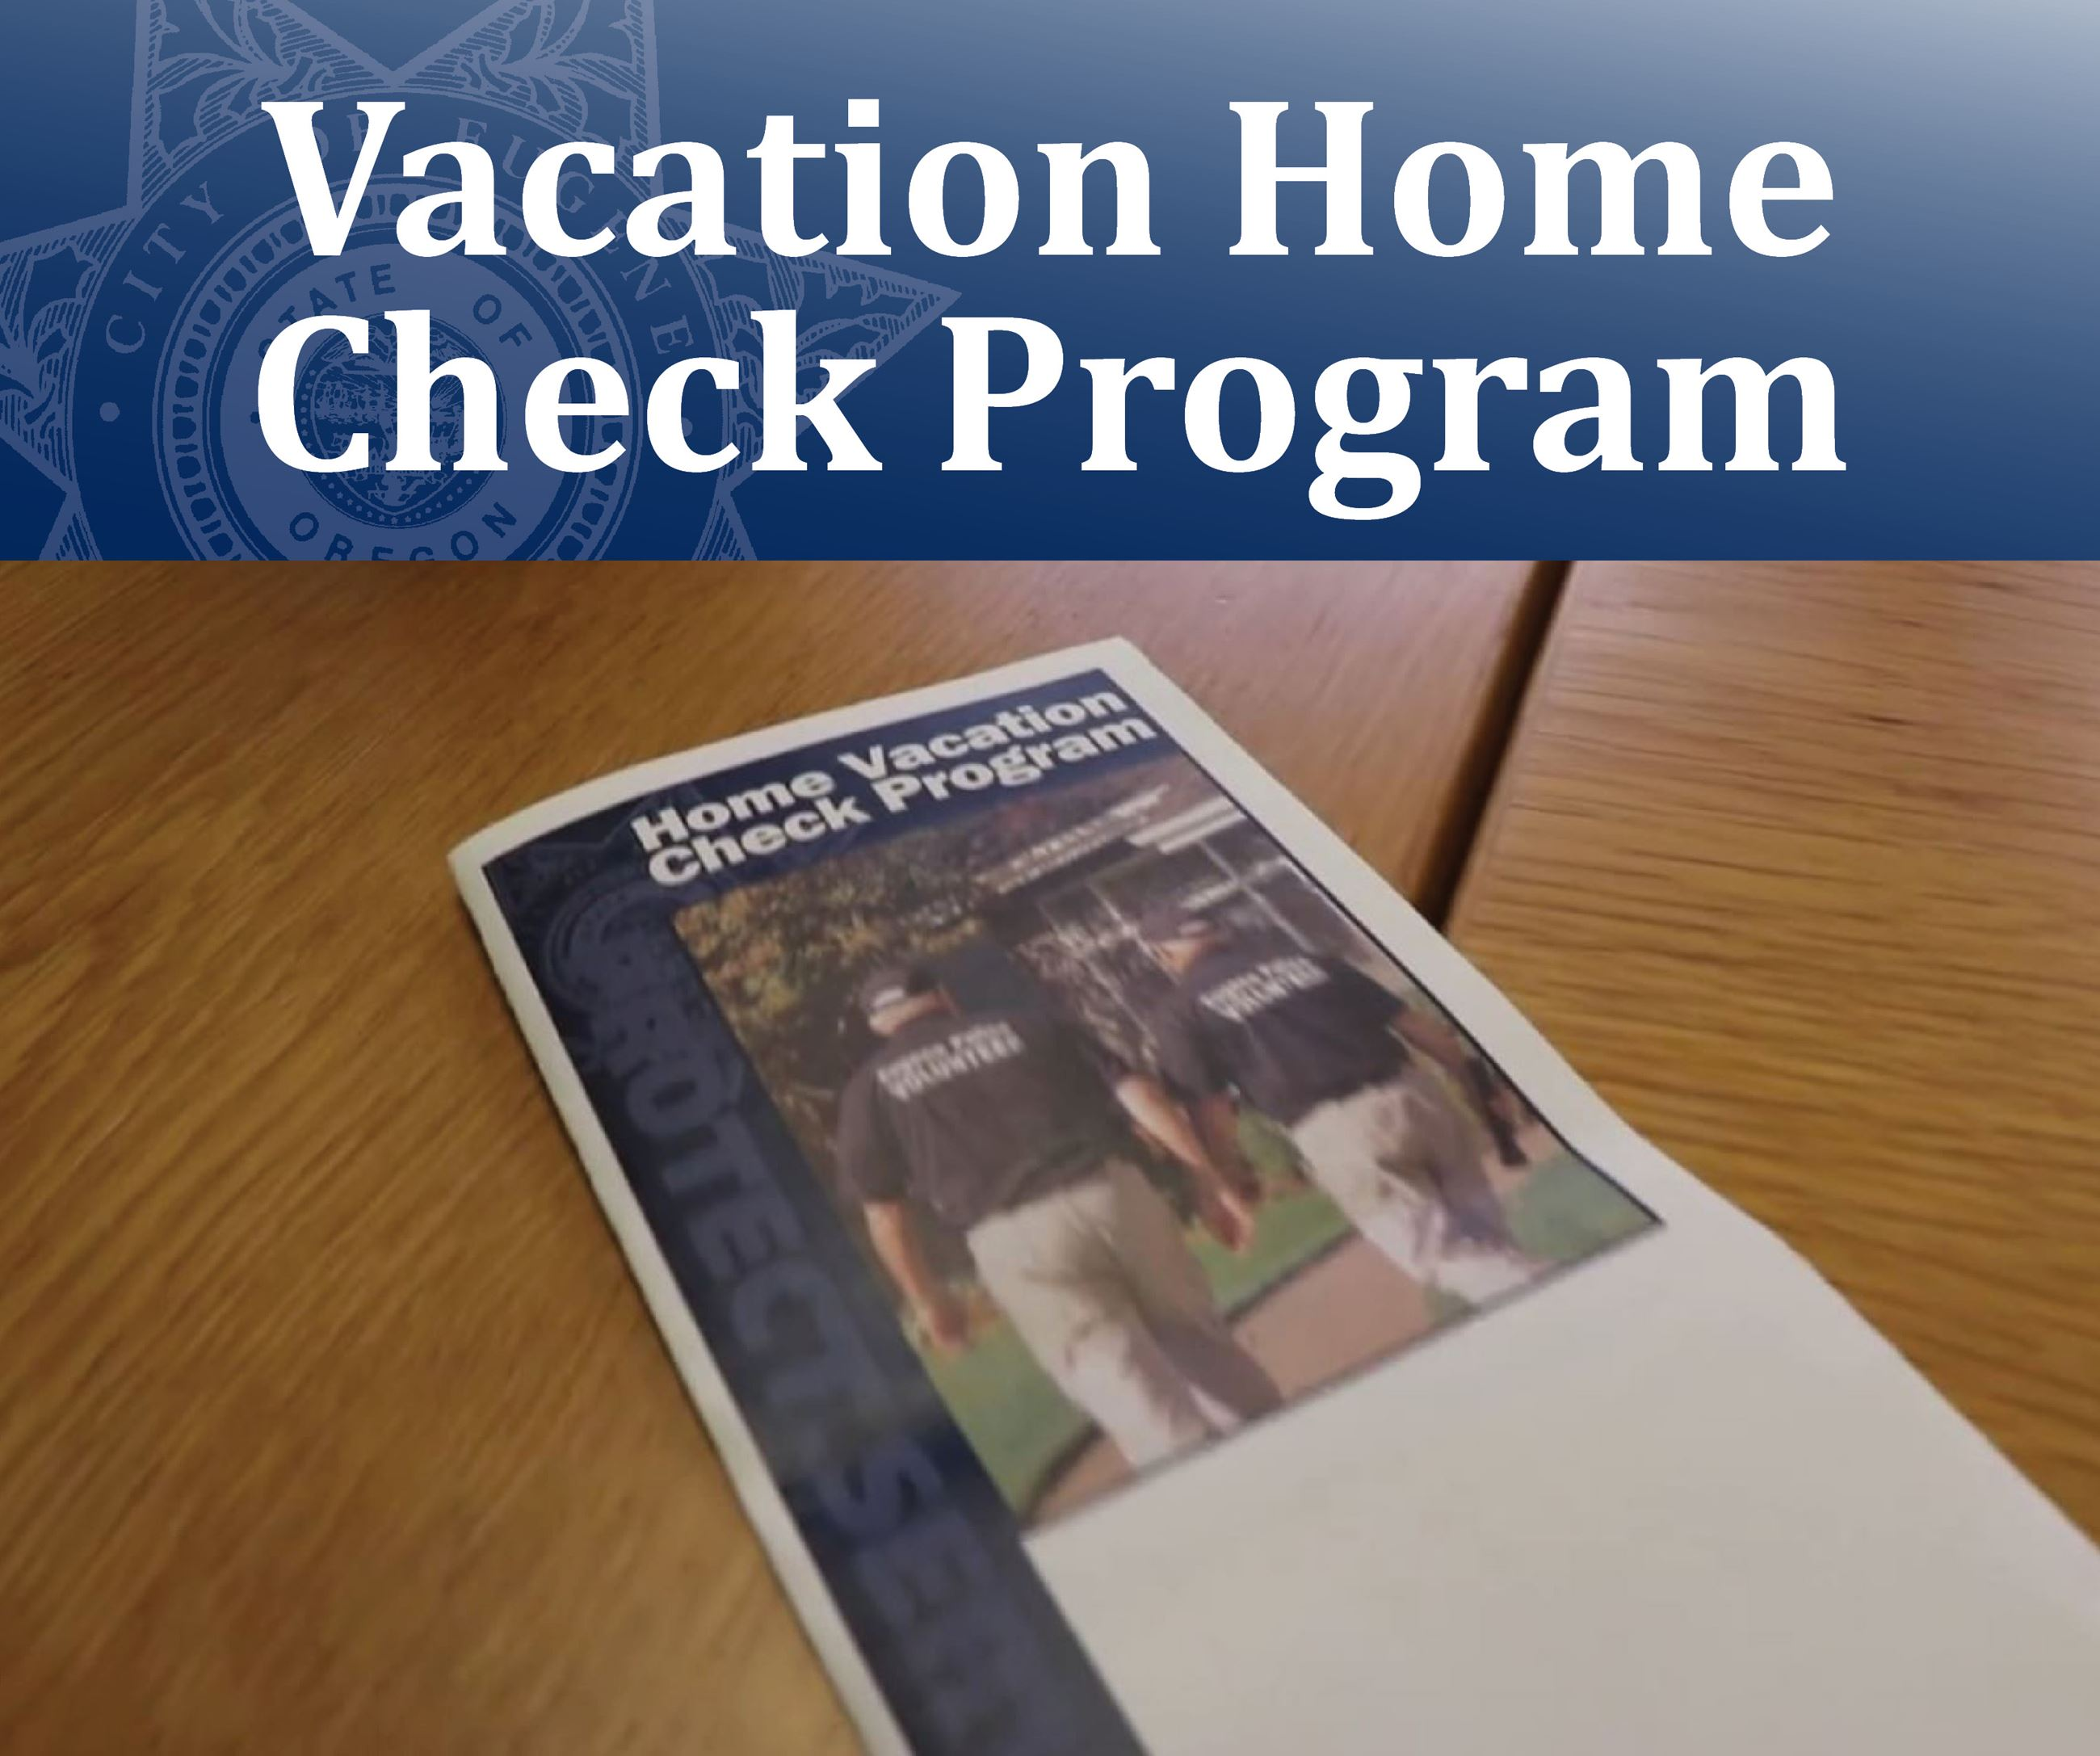 VacationHome Check Program Opens in new window